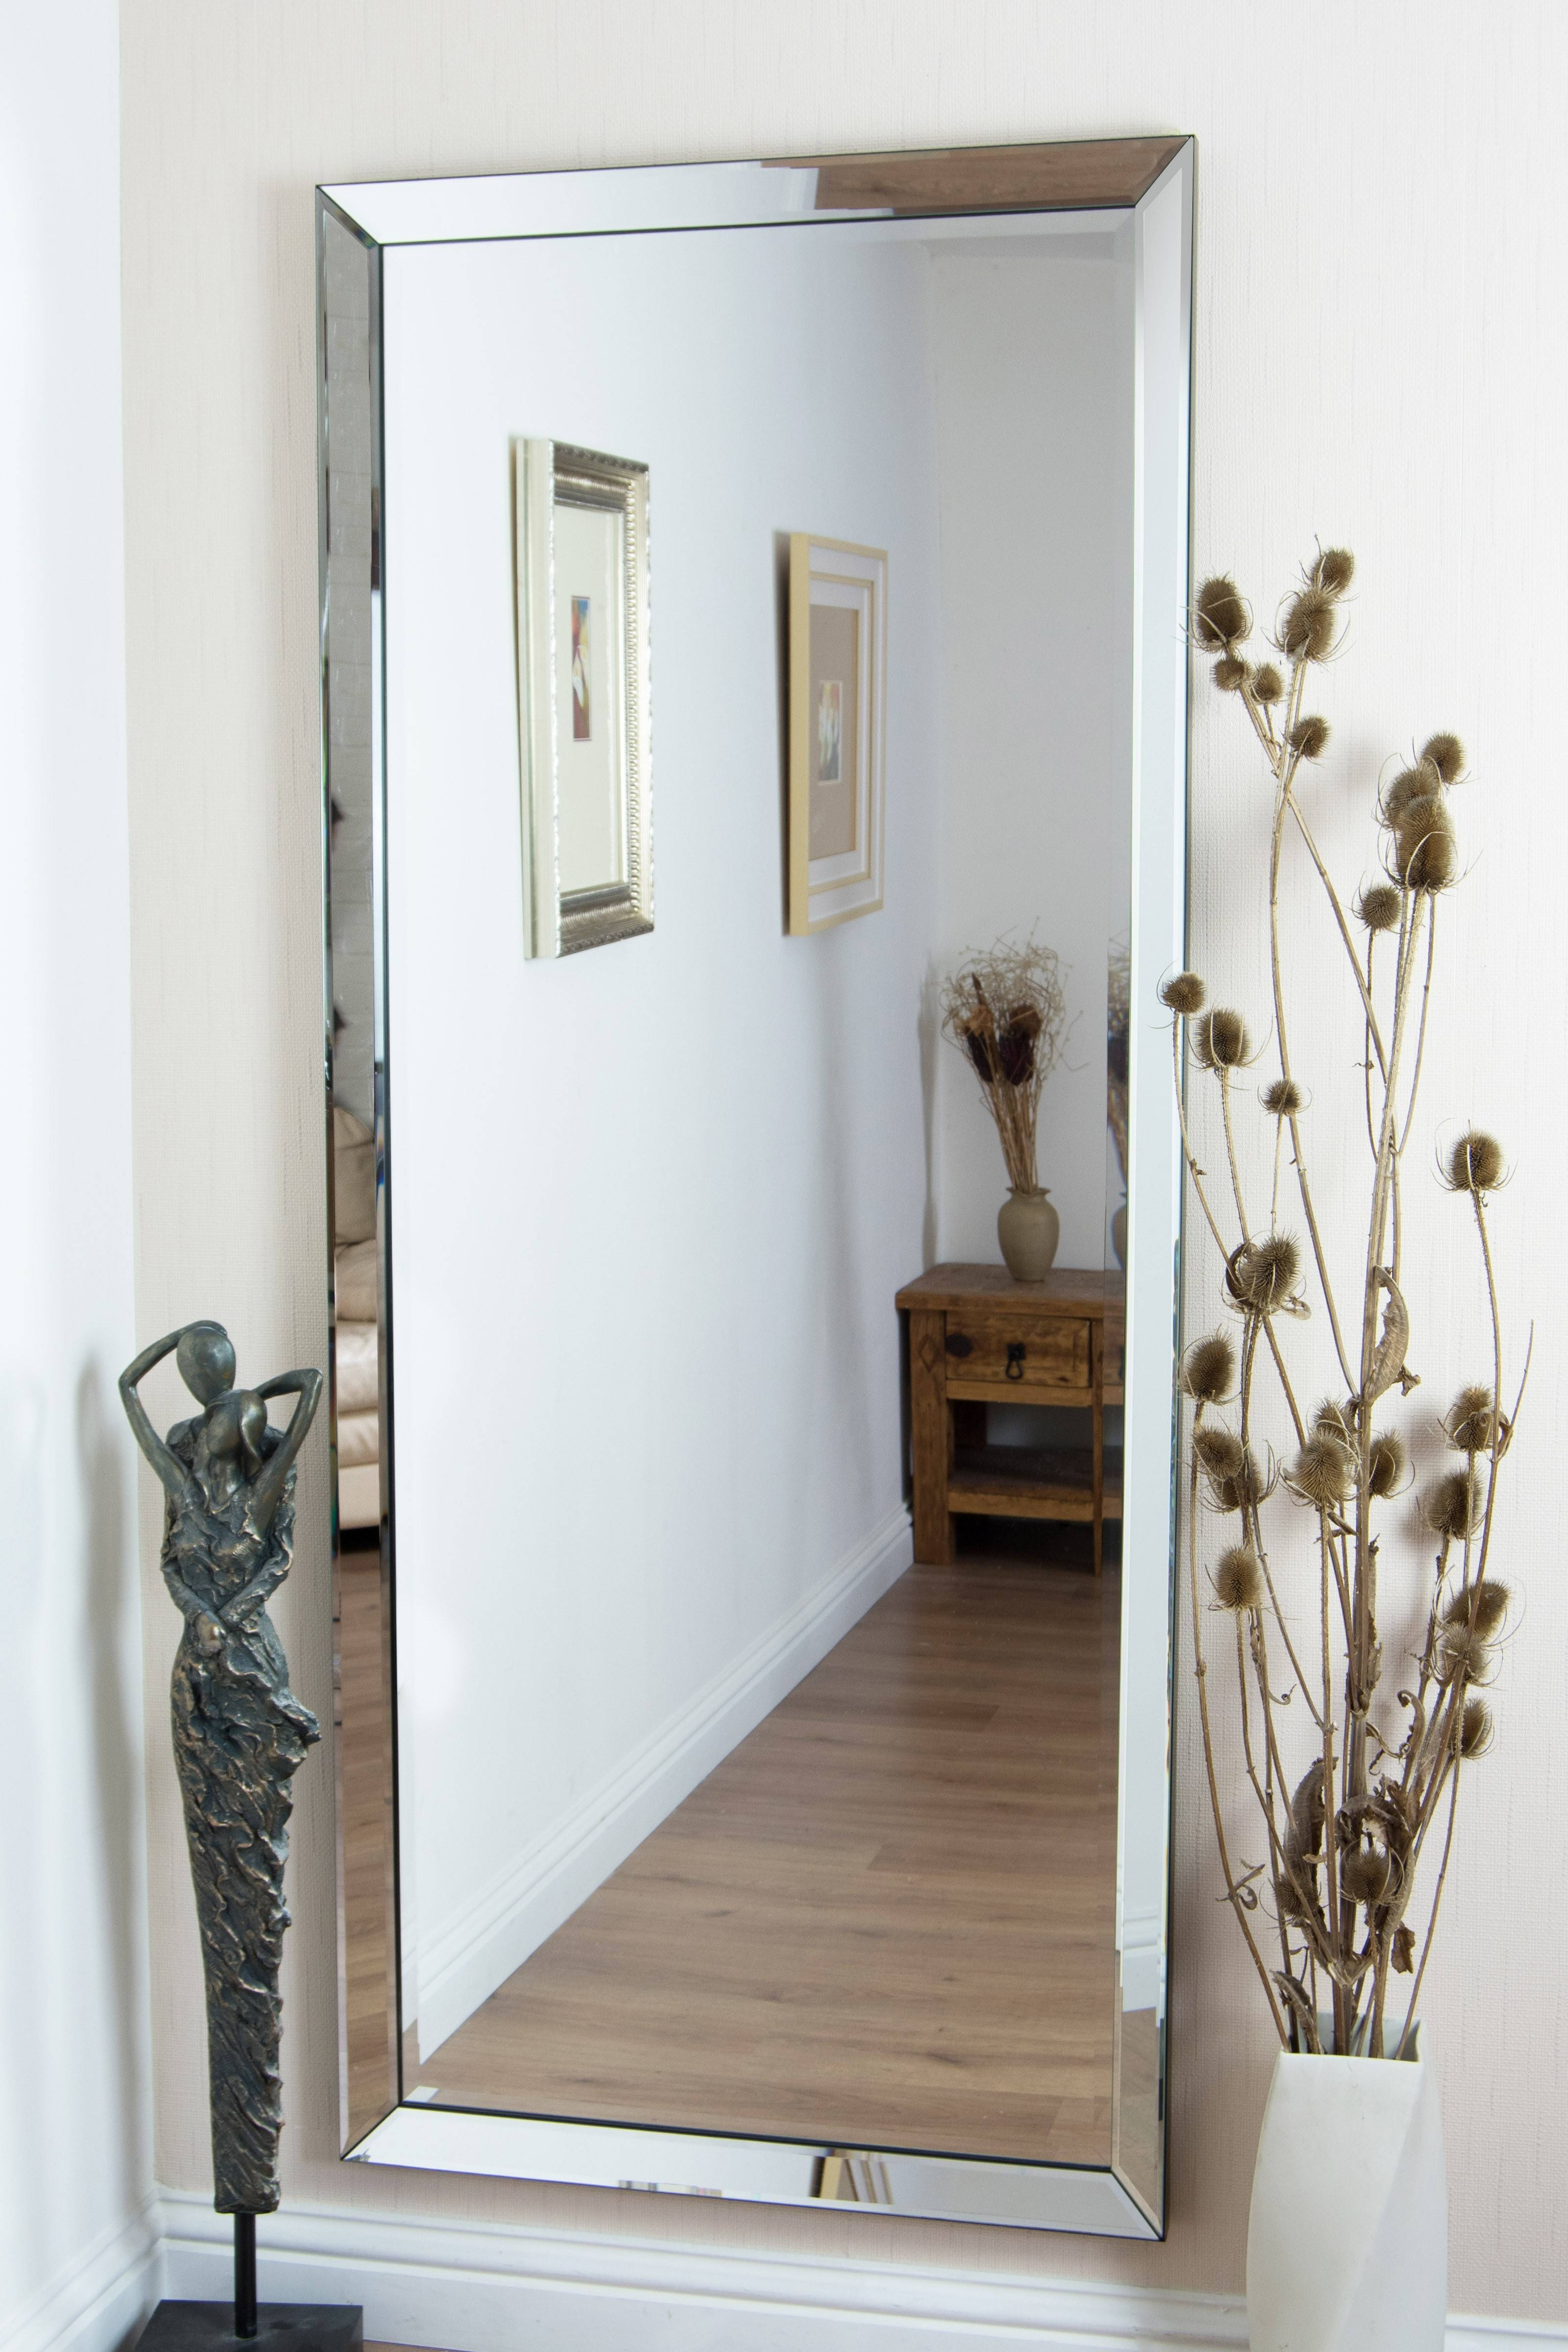 Decoration Cool Large Modern Frameless Wall Mounted Mirror pertaining to Large Hallway Mirrors (Image 7 of 15)